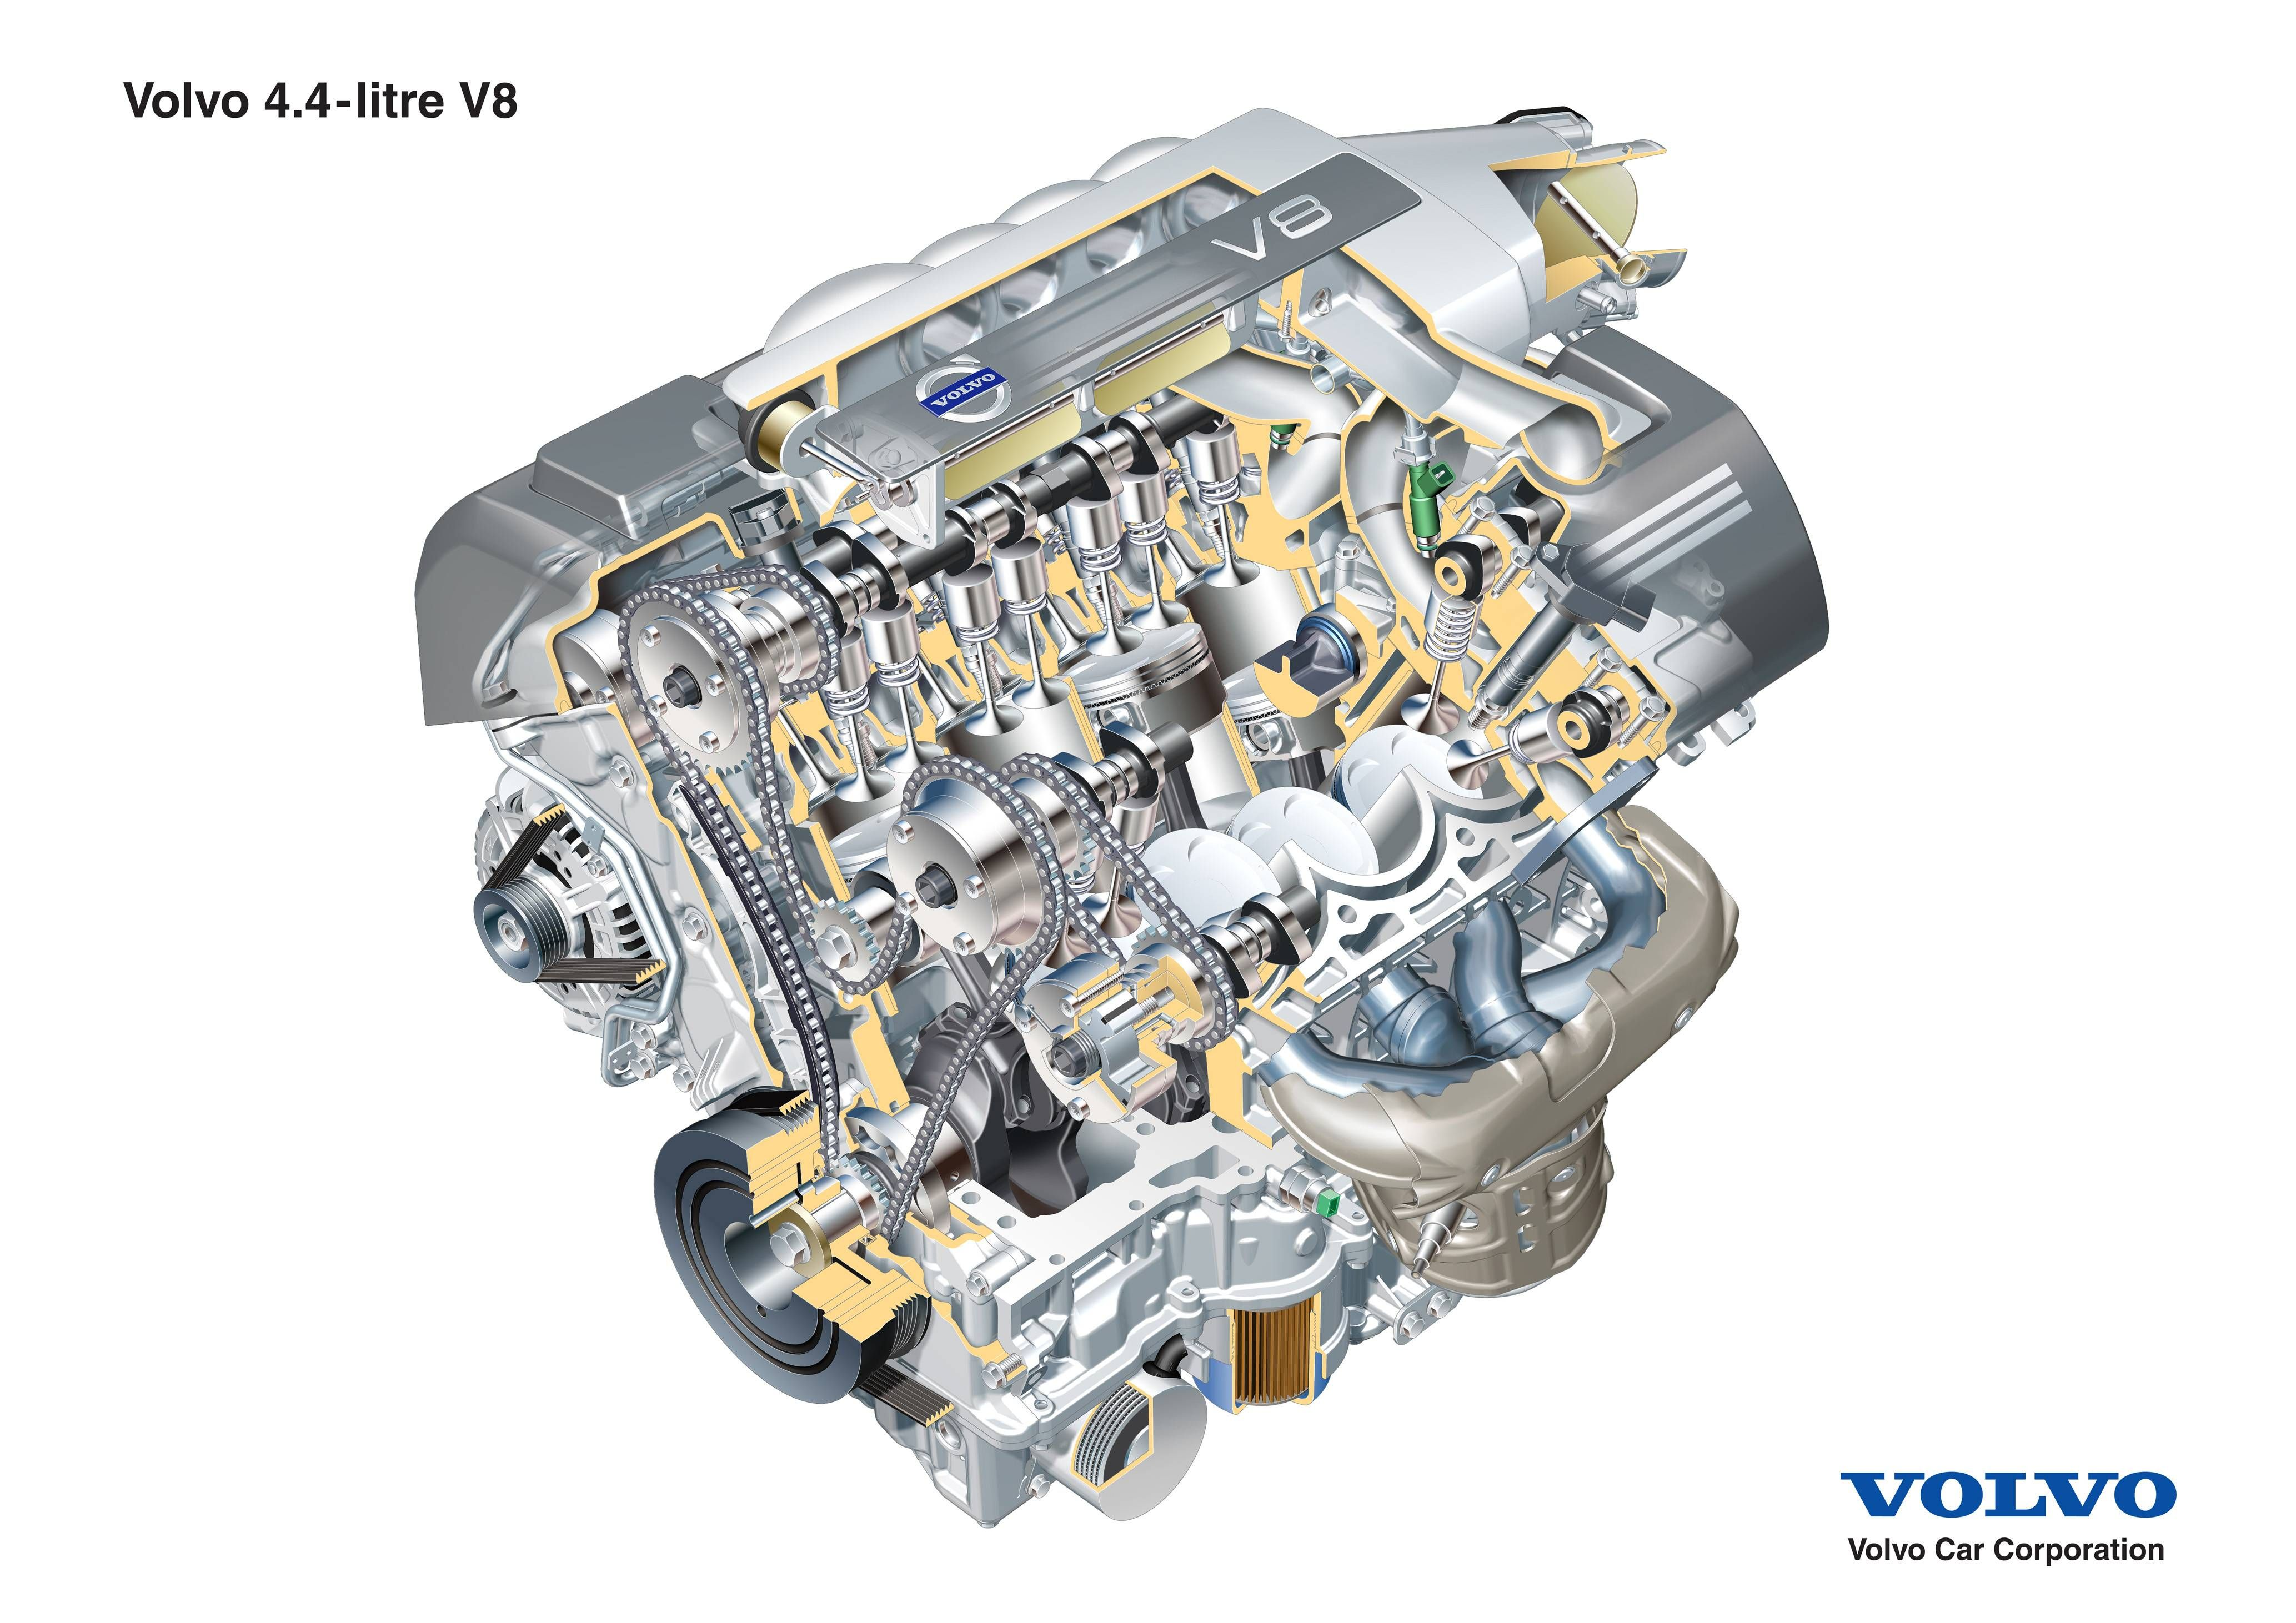 hight resolution of diagram likewise volvo xc90 v8 engine diagram on volvo s80 engine rh yuula co volvo xc90